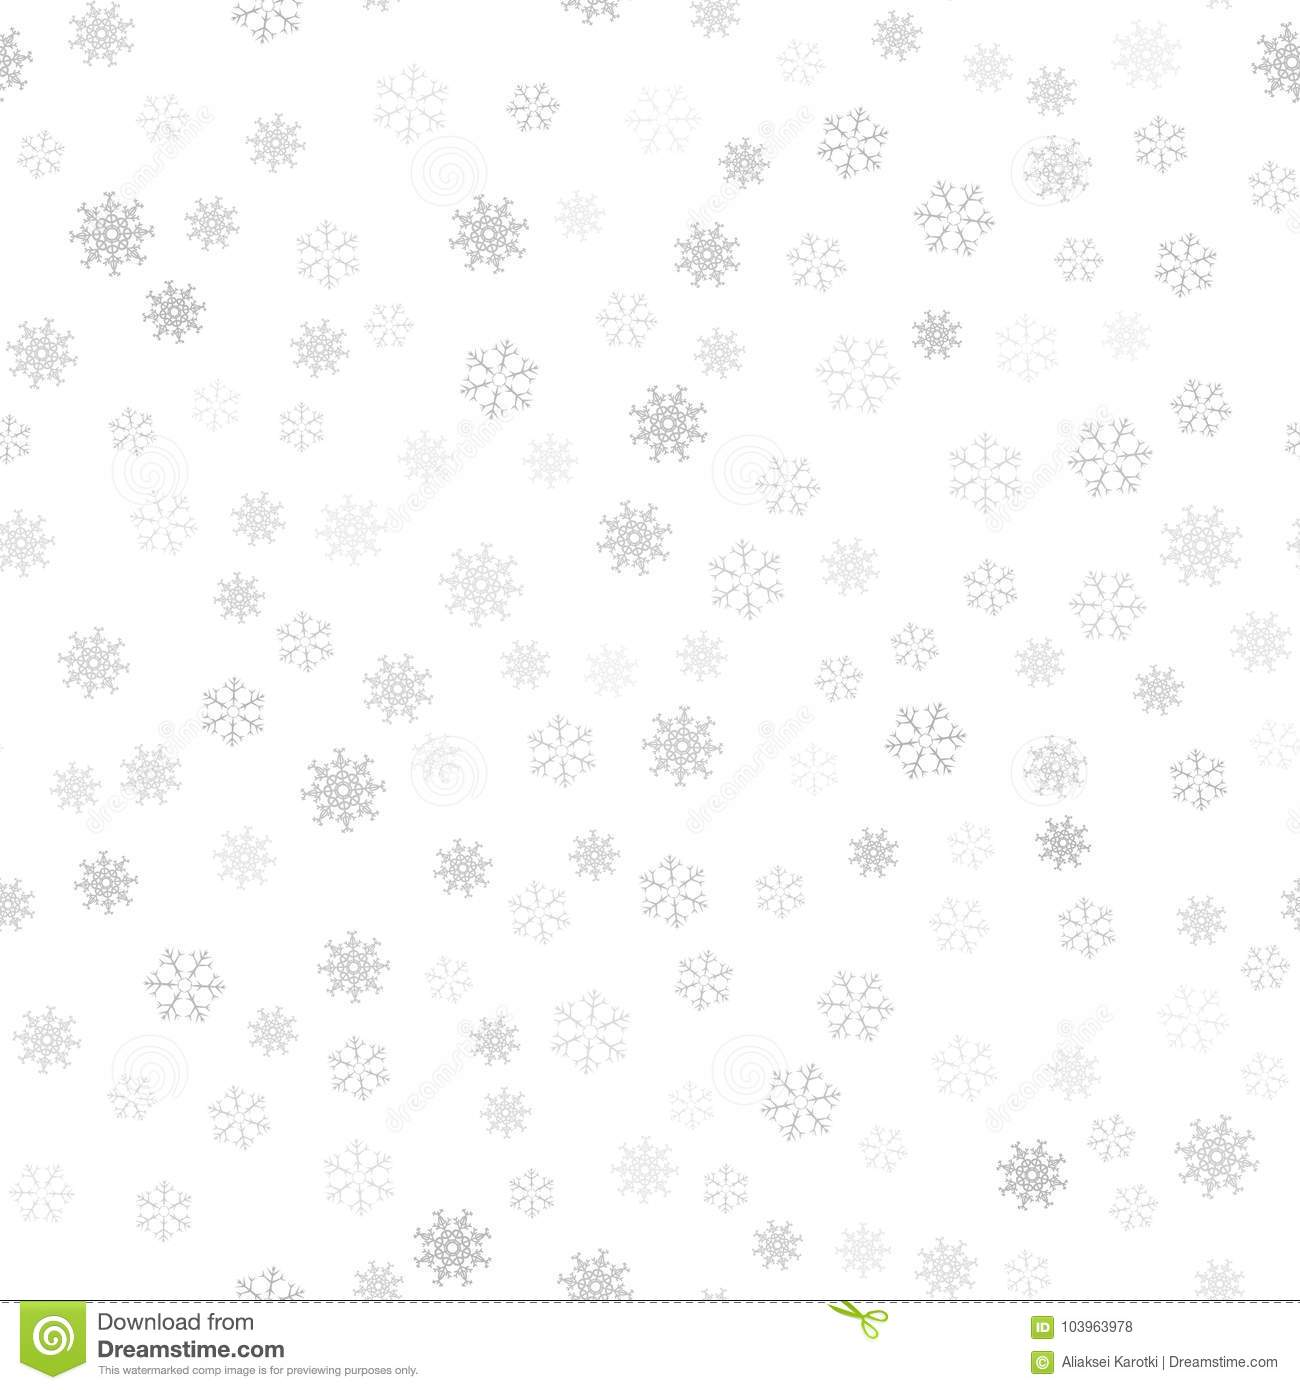 Festive christmas background of snowflakes for your design of download festive christmas background of snowflakes for your design of greeting cards greeting posters m4hsunfo